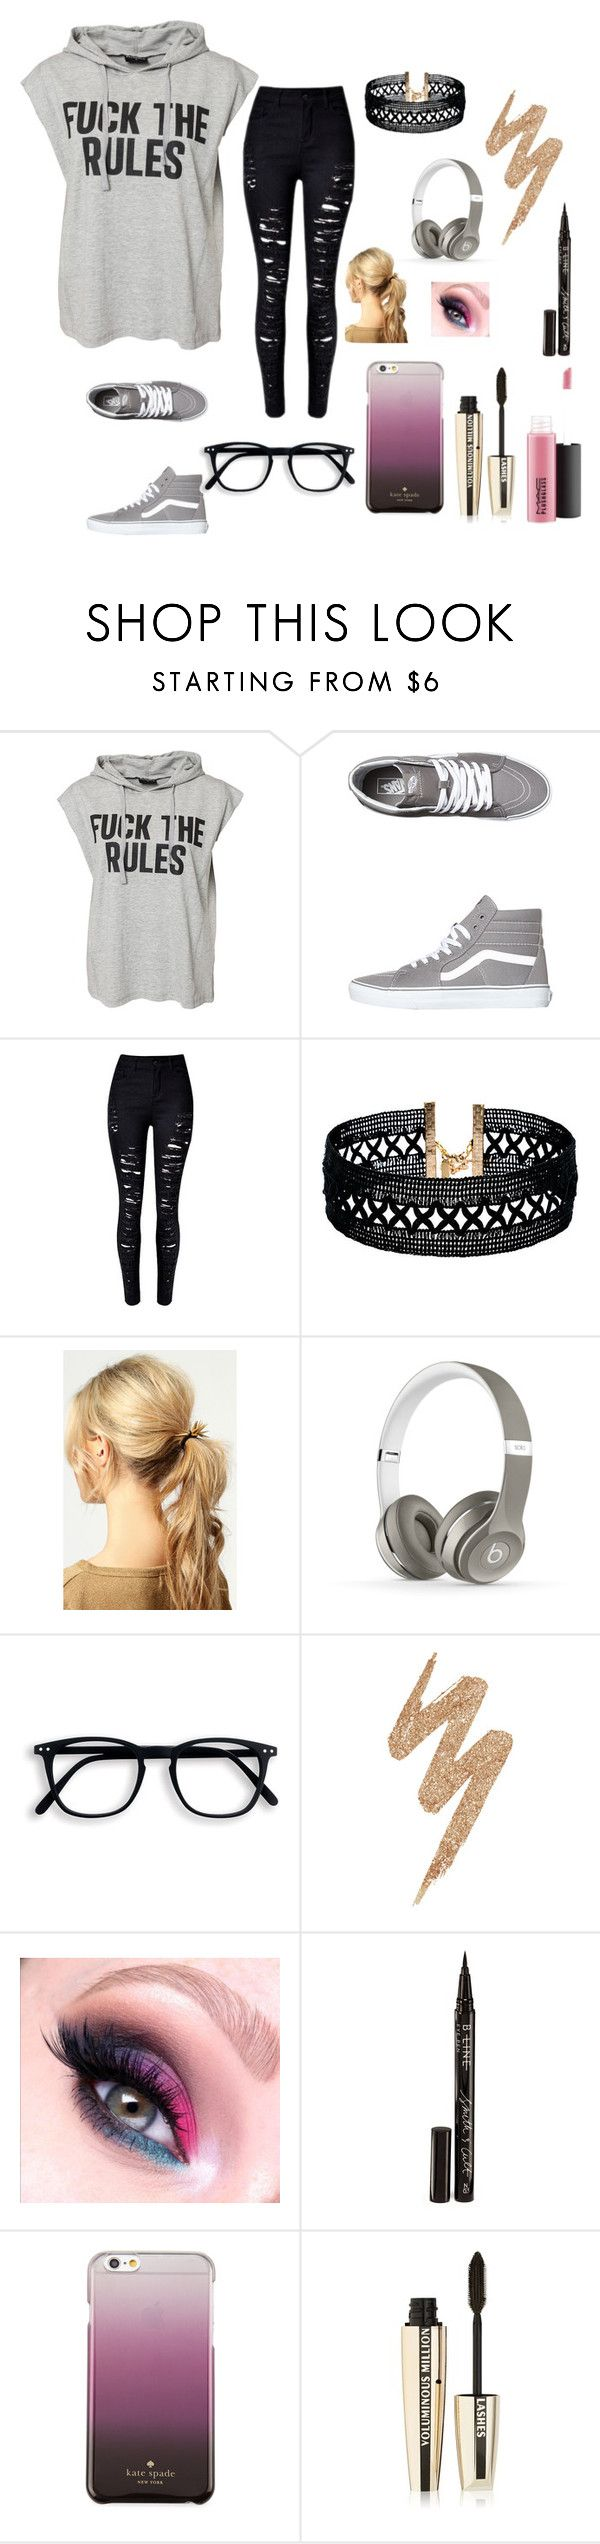 """f*ck the rules rtd"" by lifeissweet170000 ❤ liked on Polyvore featuring Sally&Circle, Vans, Vanessa Mooney, Boohoo, Beats by Dr. Dre, Urban Decay, Smith & Cult, Kate Spade, L'Oréal Paris and MAC Cosmetics"